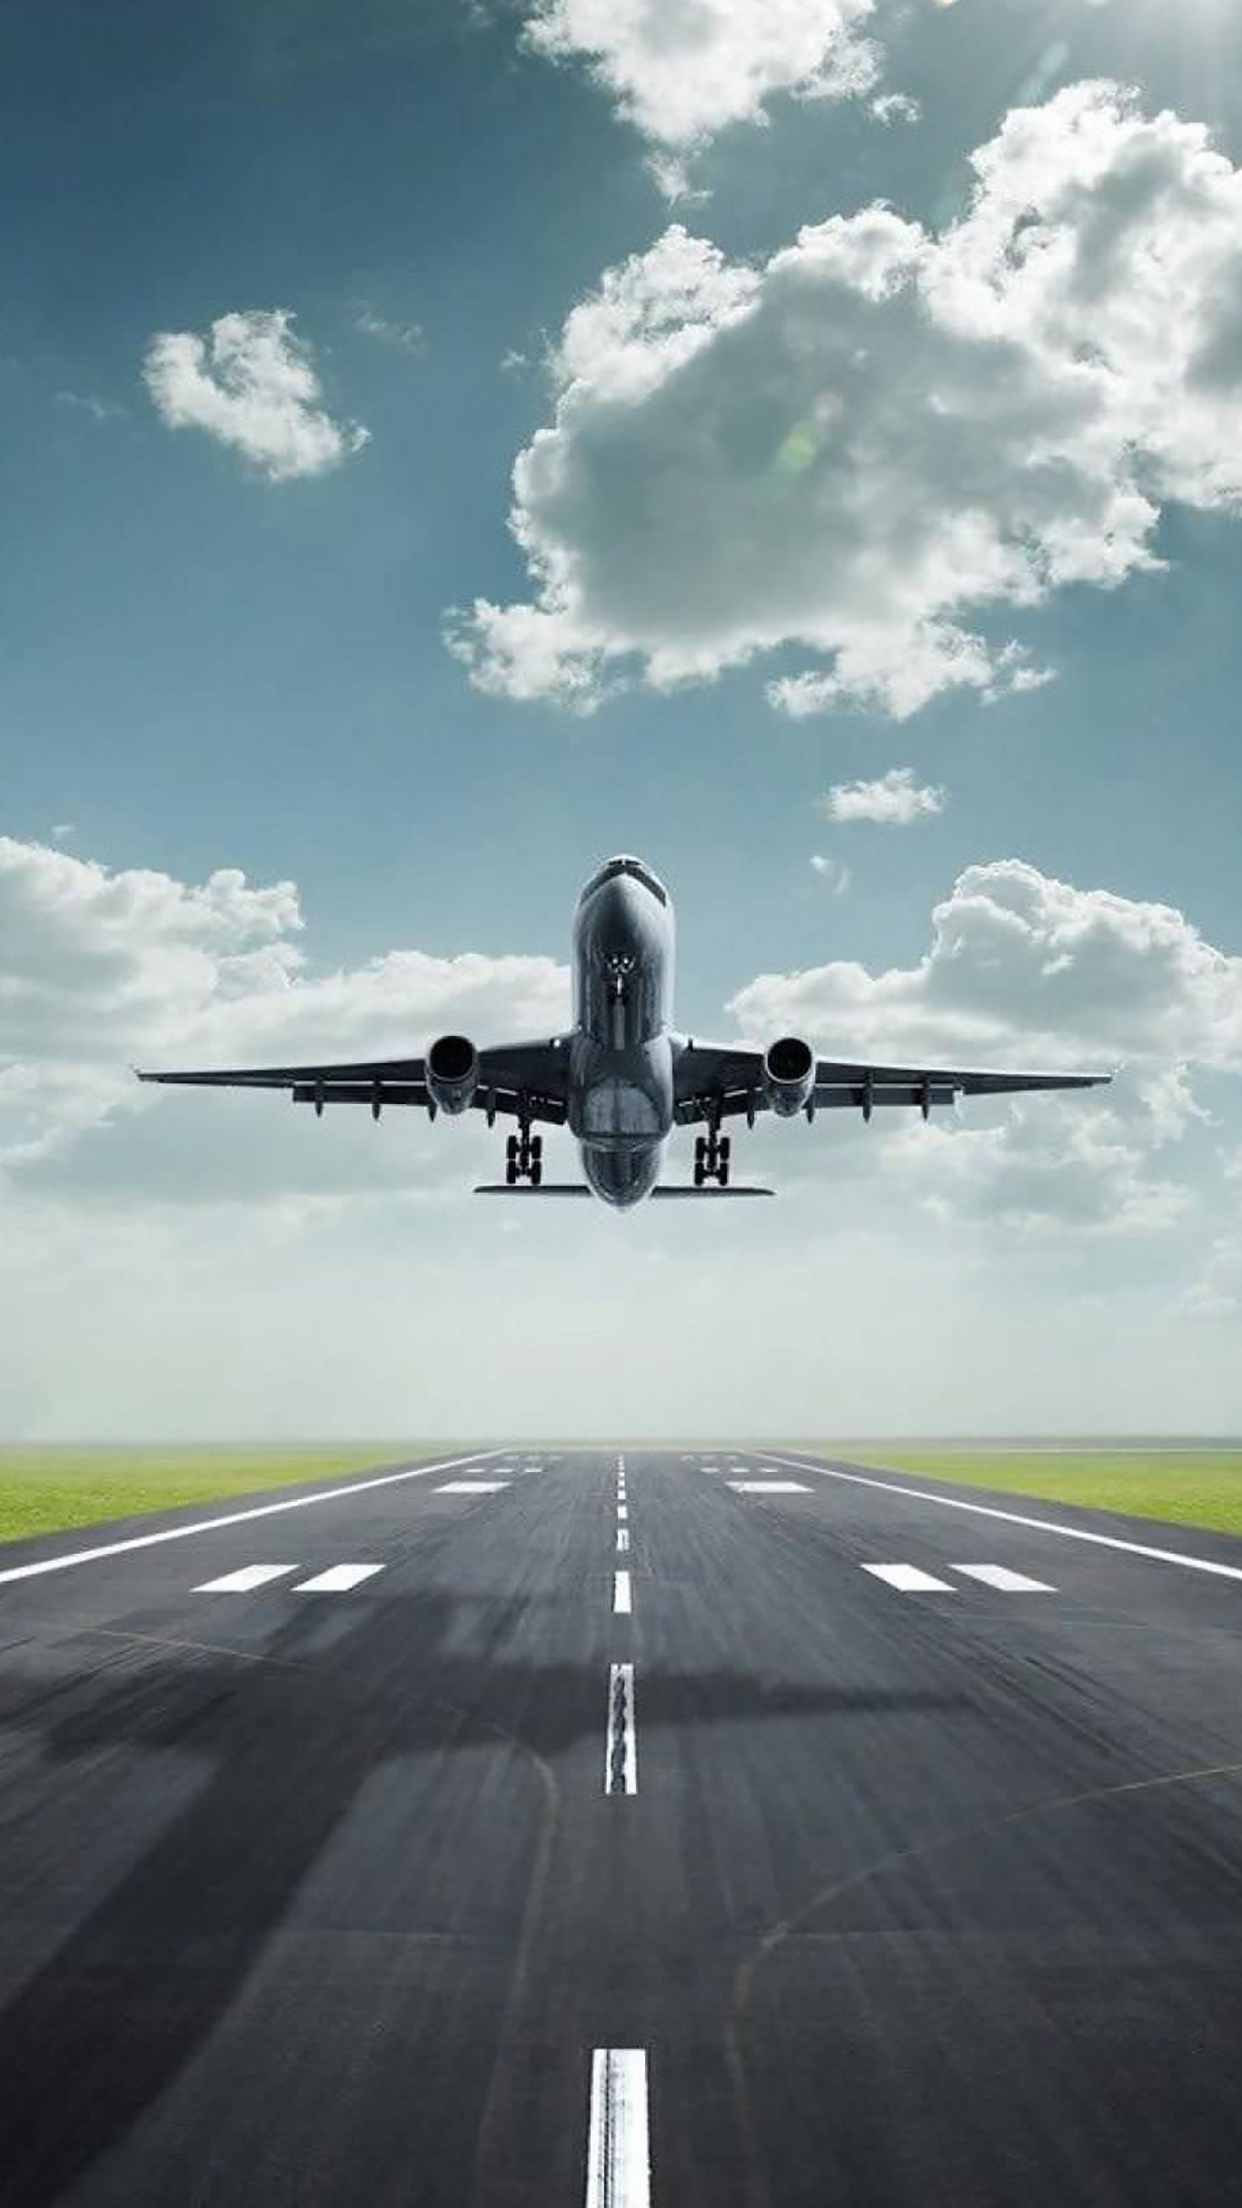 Airplane Take Off 1 3Wallpapers iPhone Parallax Airplane Take Off : 1